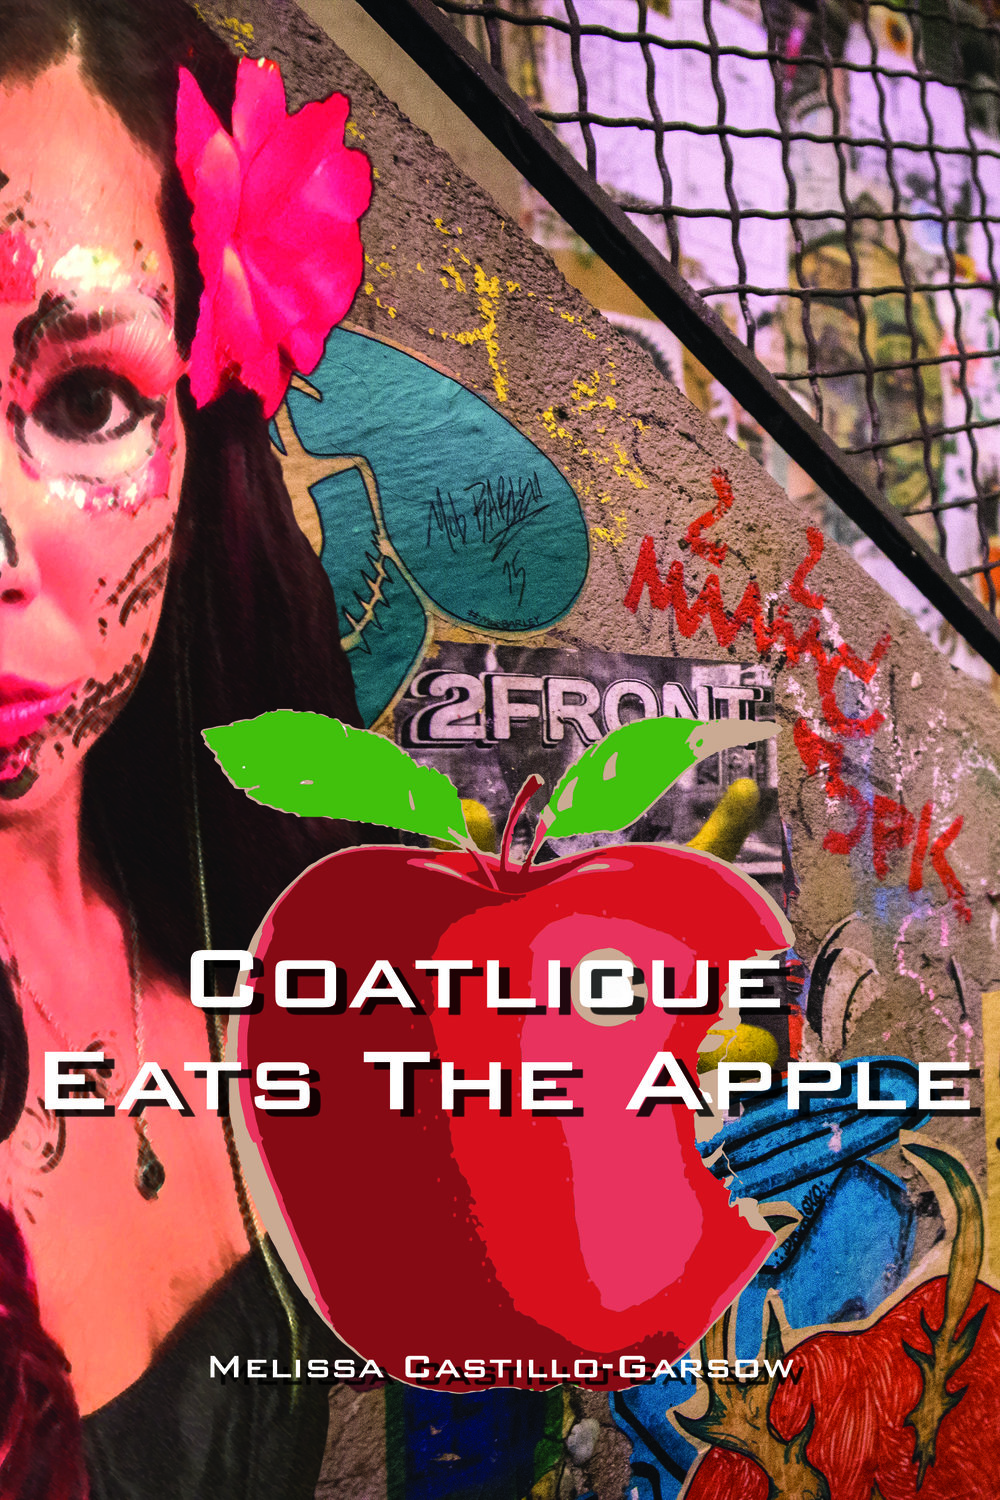 Coatlicue Eats The Apple Final7 (2016-03-19, 20-39-56).jpg